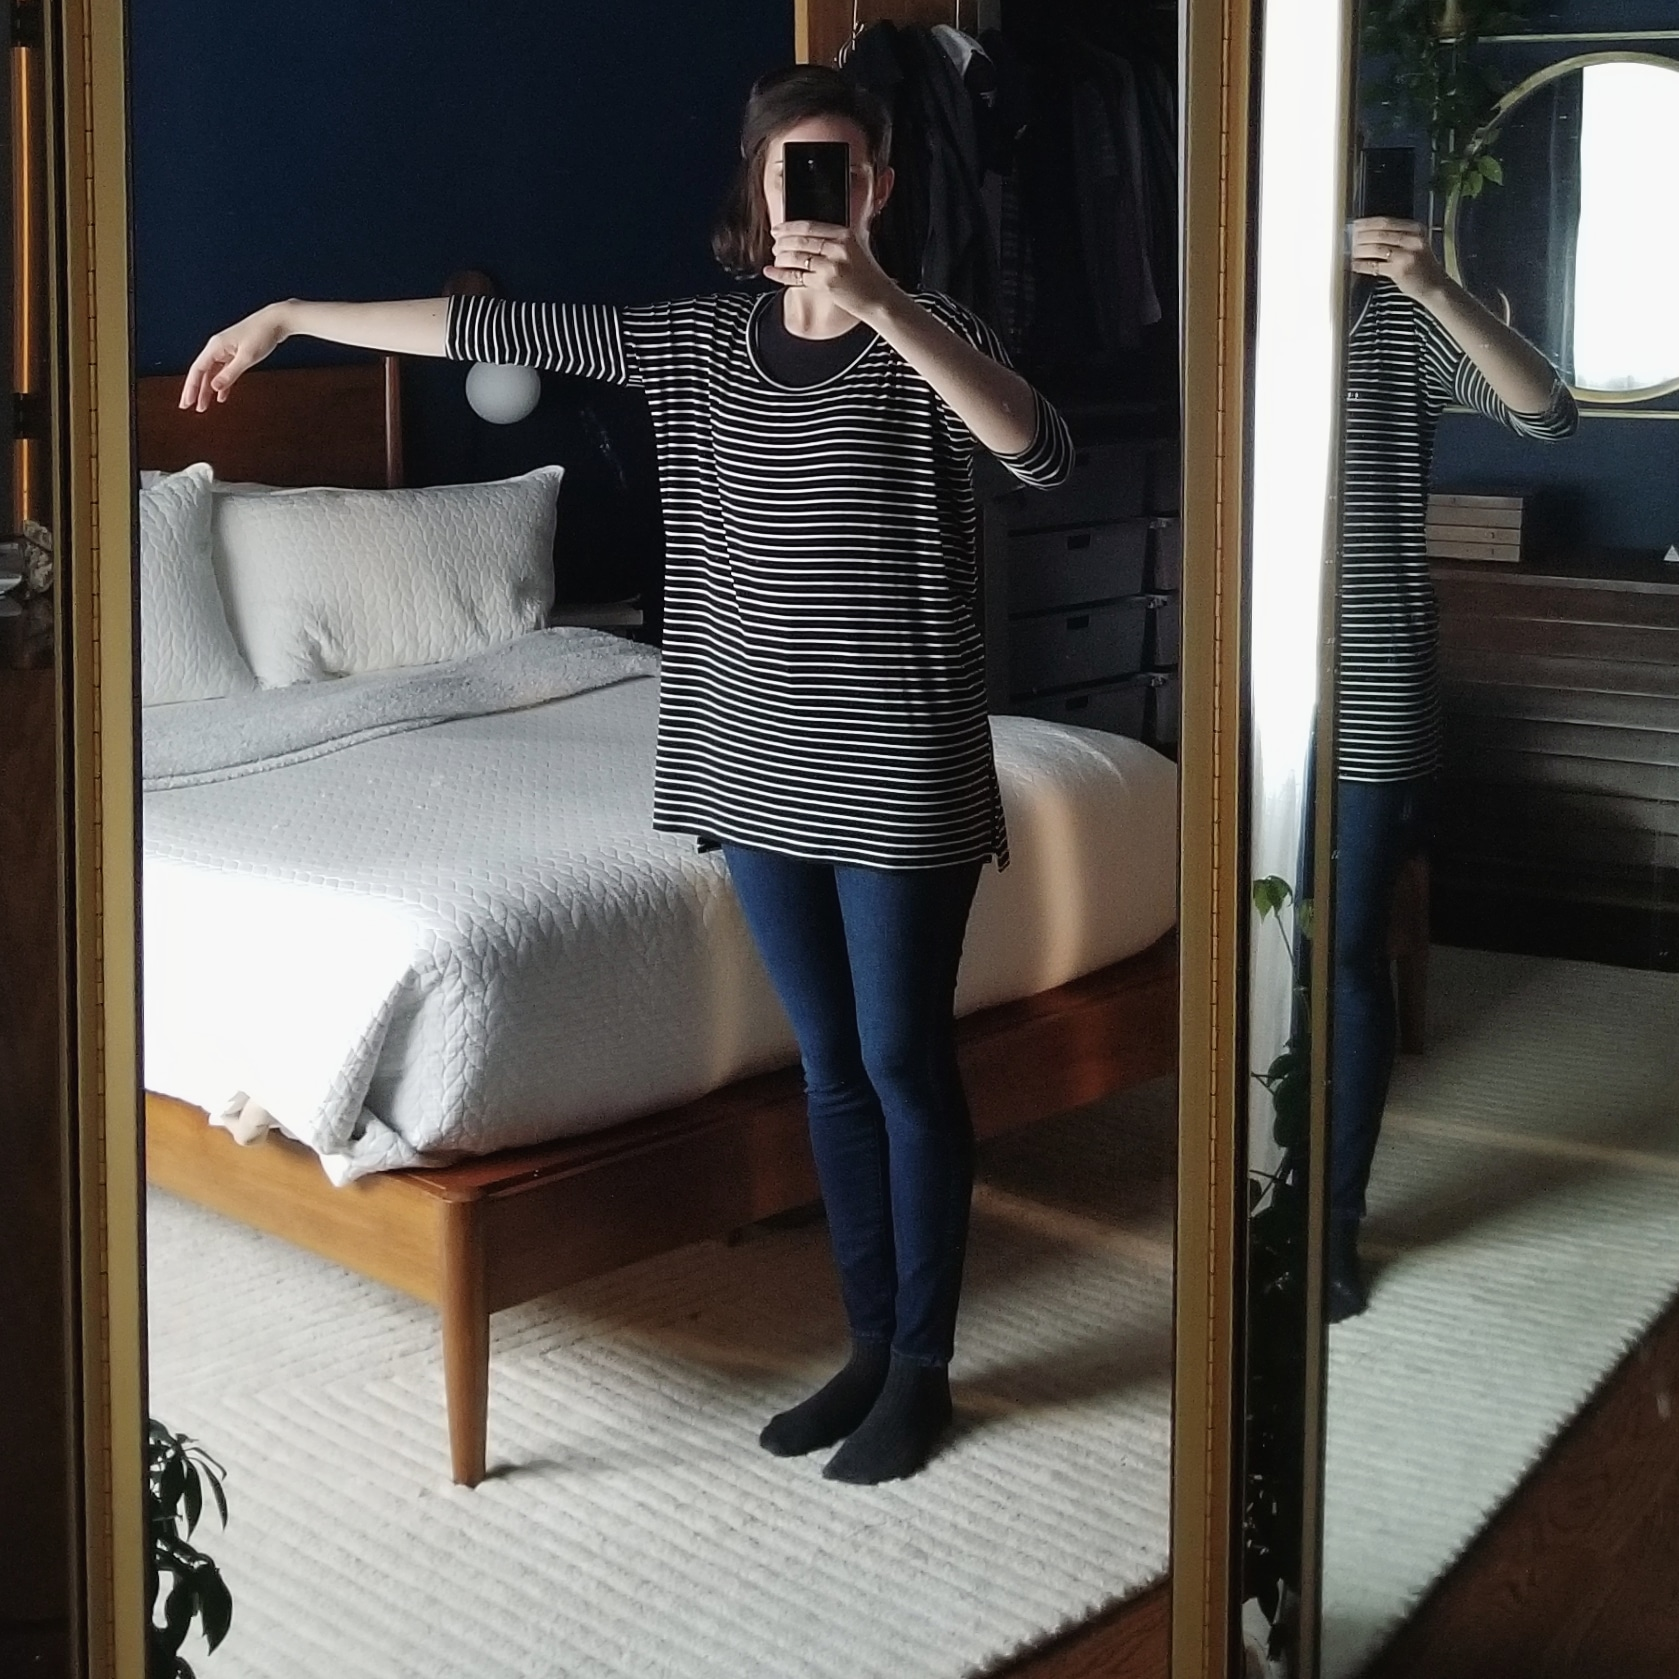 Tuesday - January 9, 2018I'm trying some outfit of the day shots in the bedroom! I love the light in here in the morningand the three-way mirror is ideal for full-length photos. My home design style is a little bit of a reflection of my personal style — somewhat neutral with statement pieces.